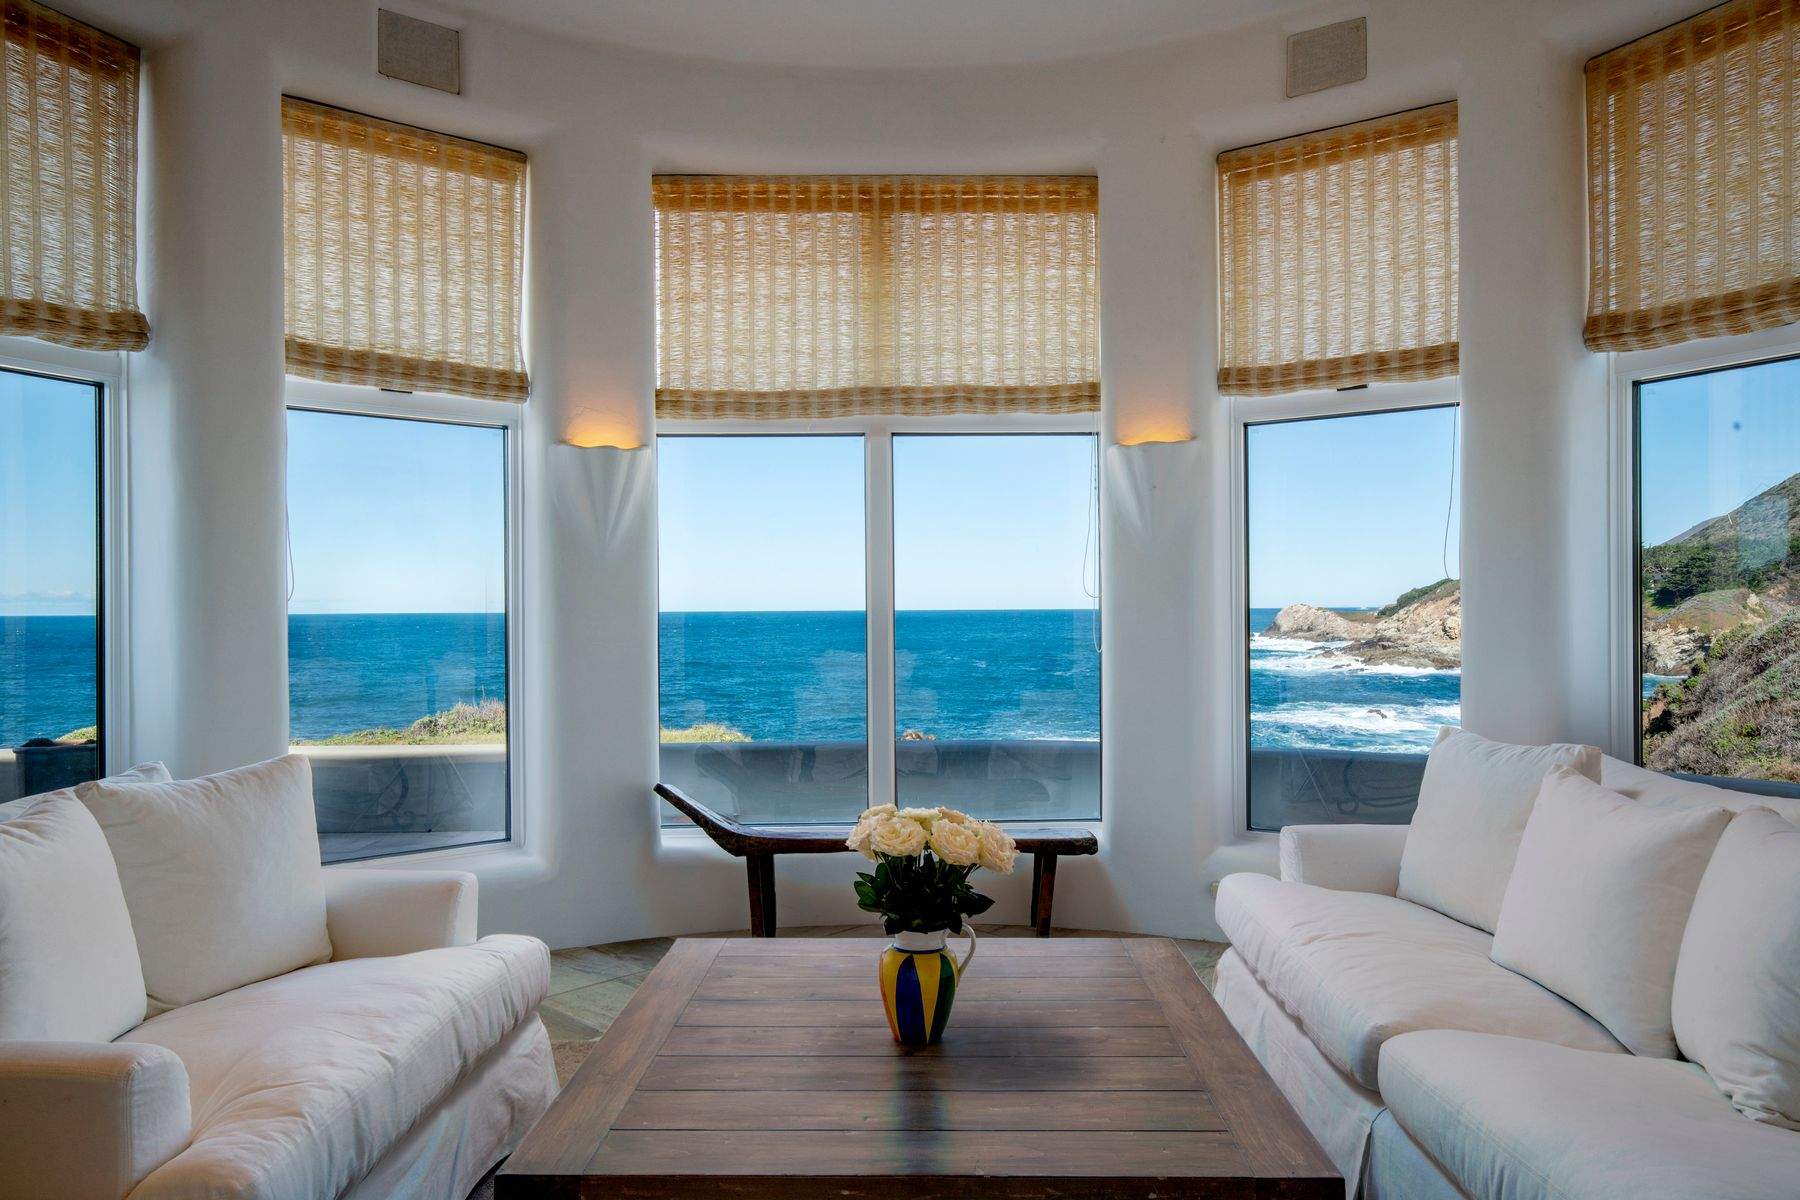 Single Family Homes for Sale at Artistic Oceanfront 36654 Highway 1 Carmel Highlands, California 93940 United States